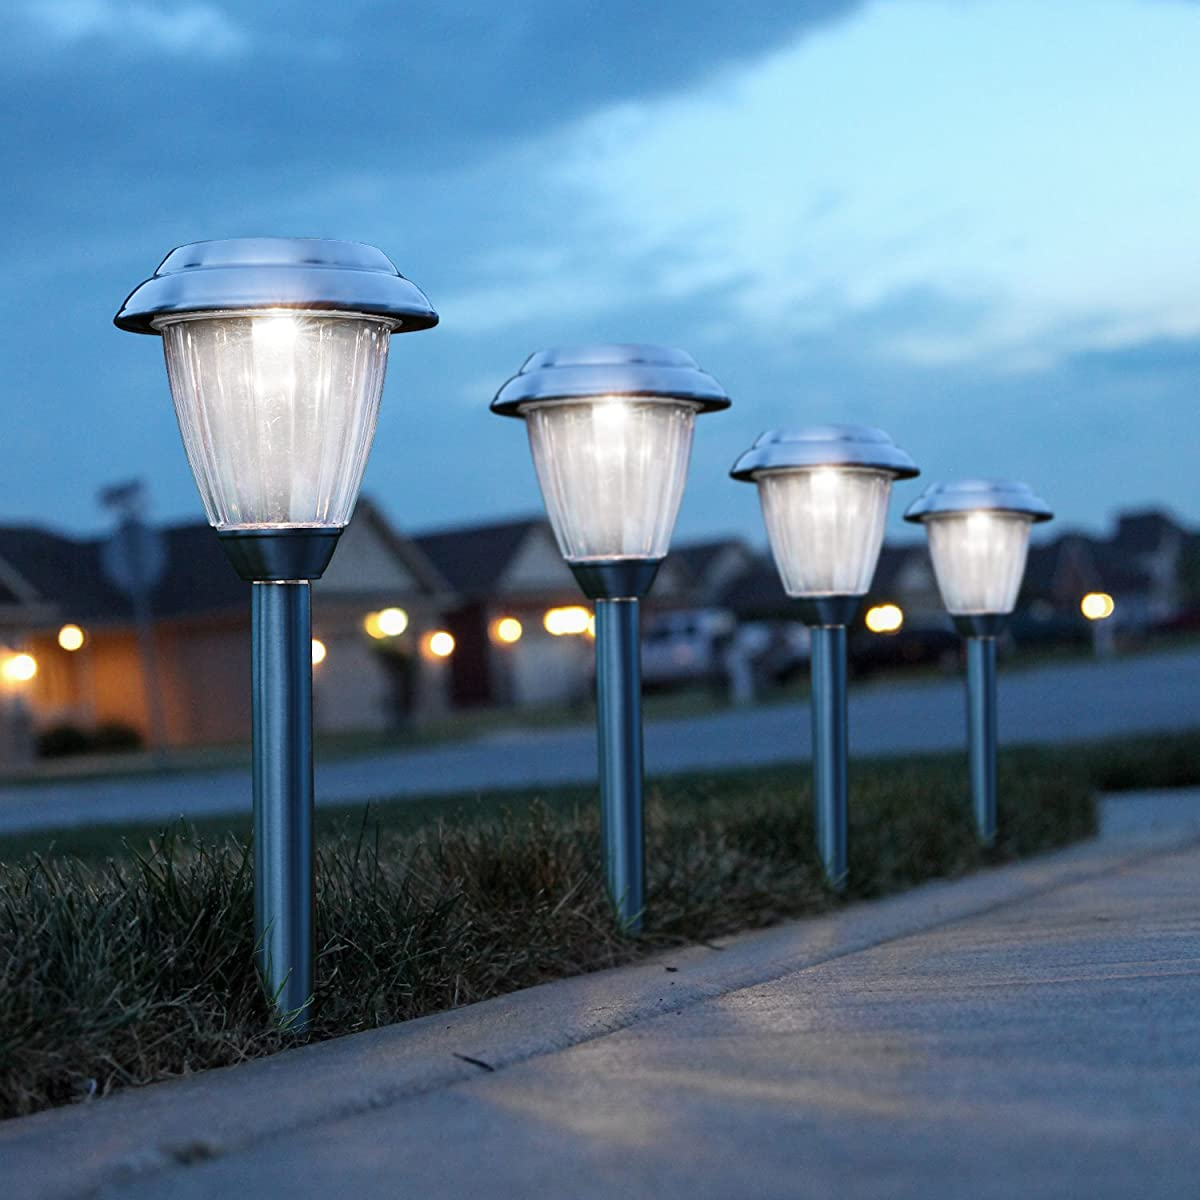 Solar Landscape Lights Outdoor: Solar Pathway Lights Outdoor, Kohree Led Solar Landscape